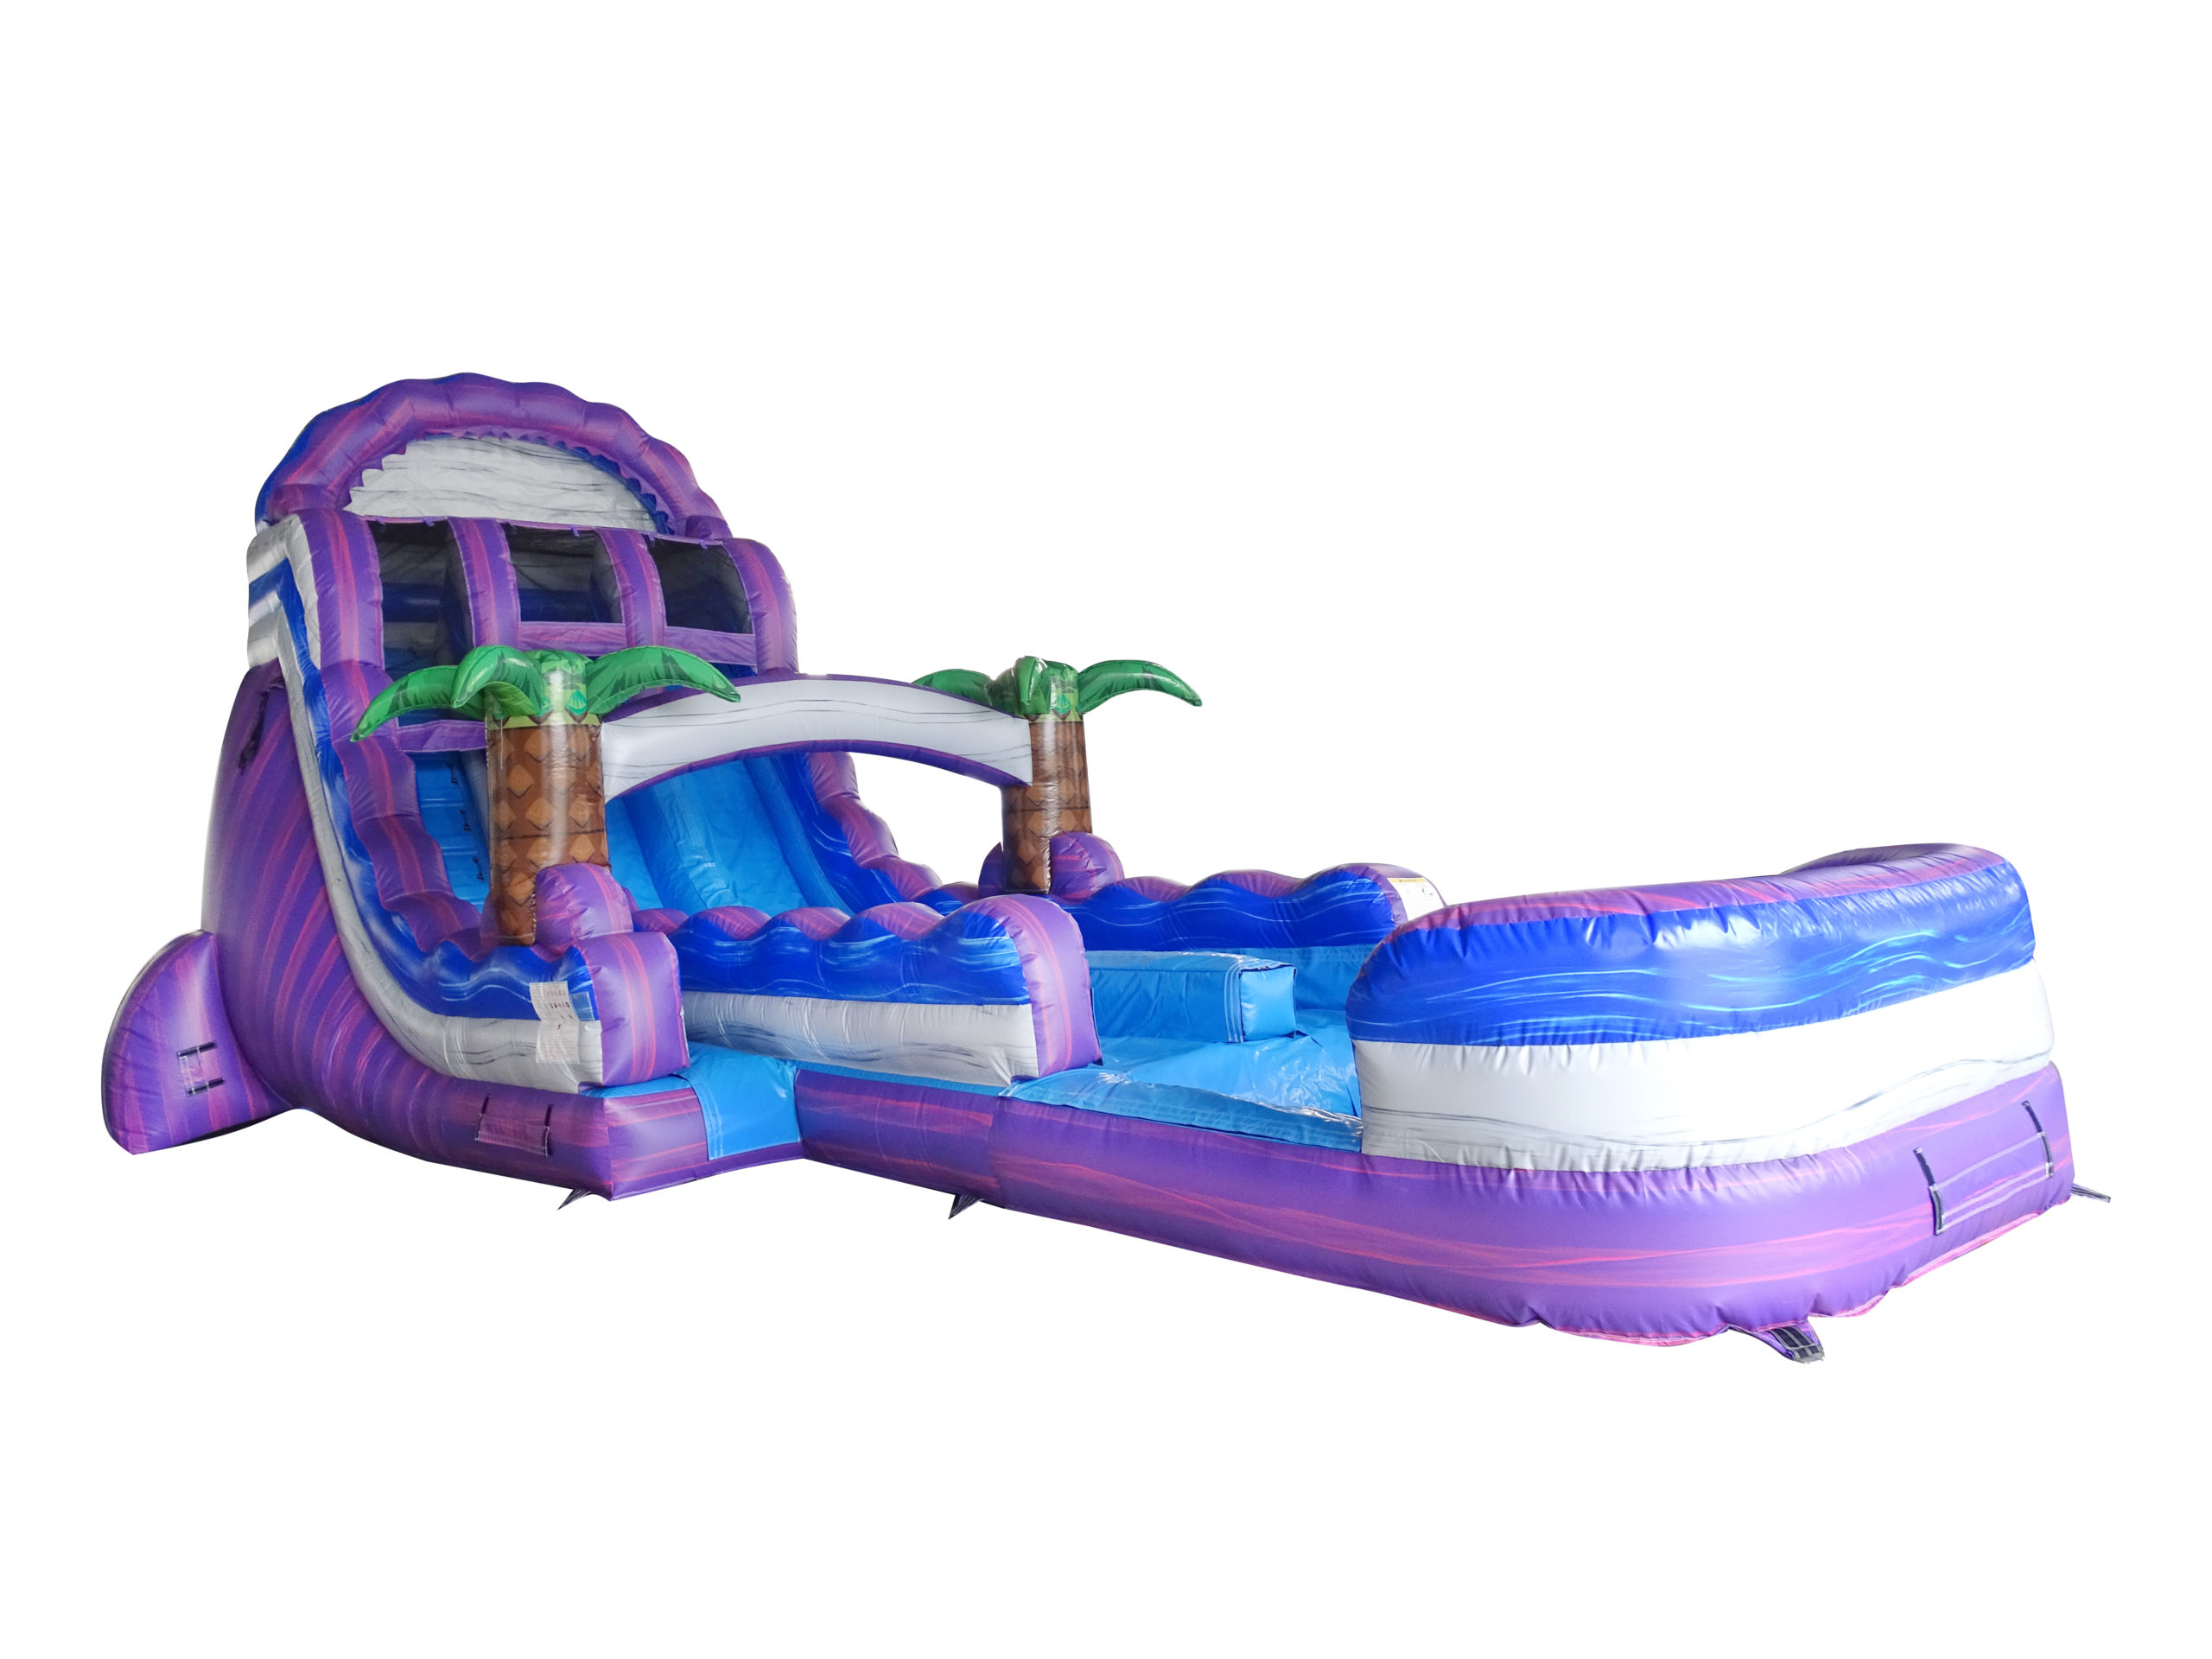 19ft-Purple-Plunge-1-2-scaled